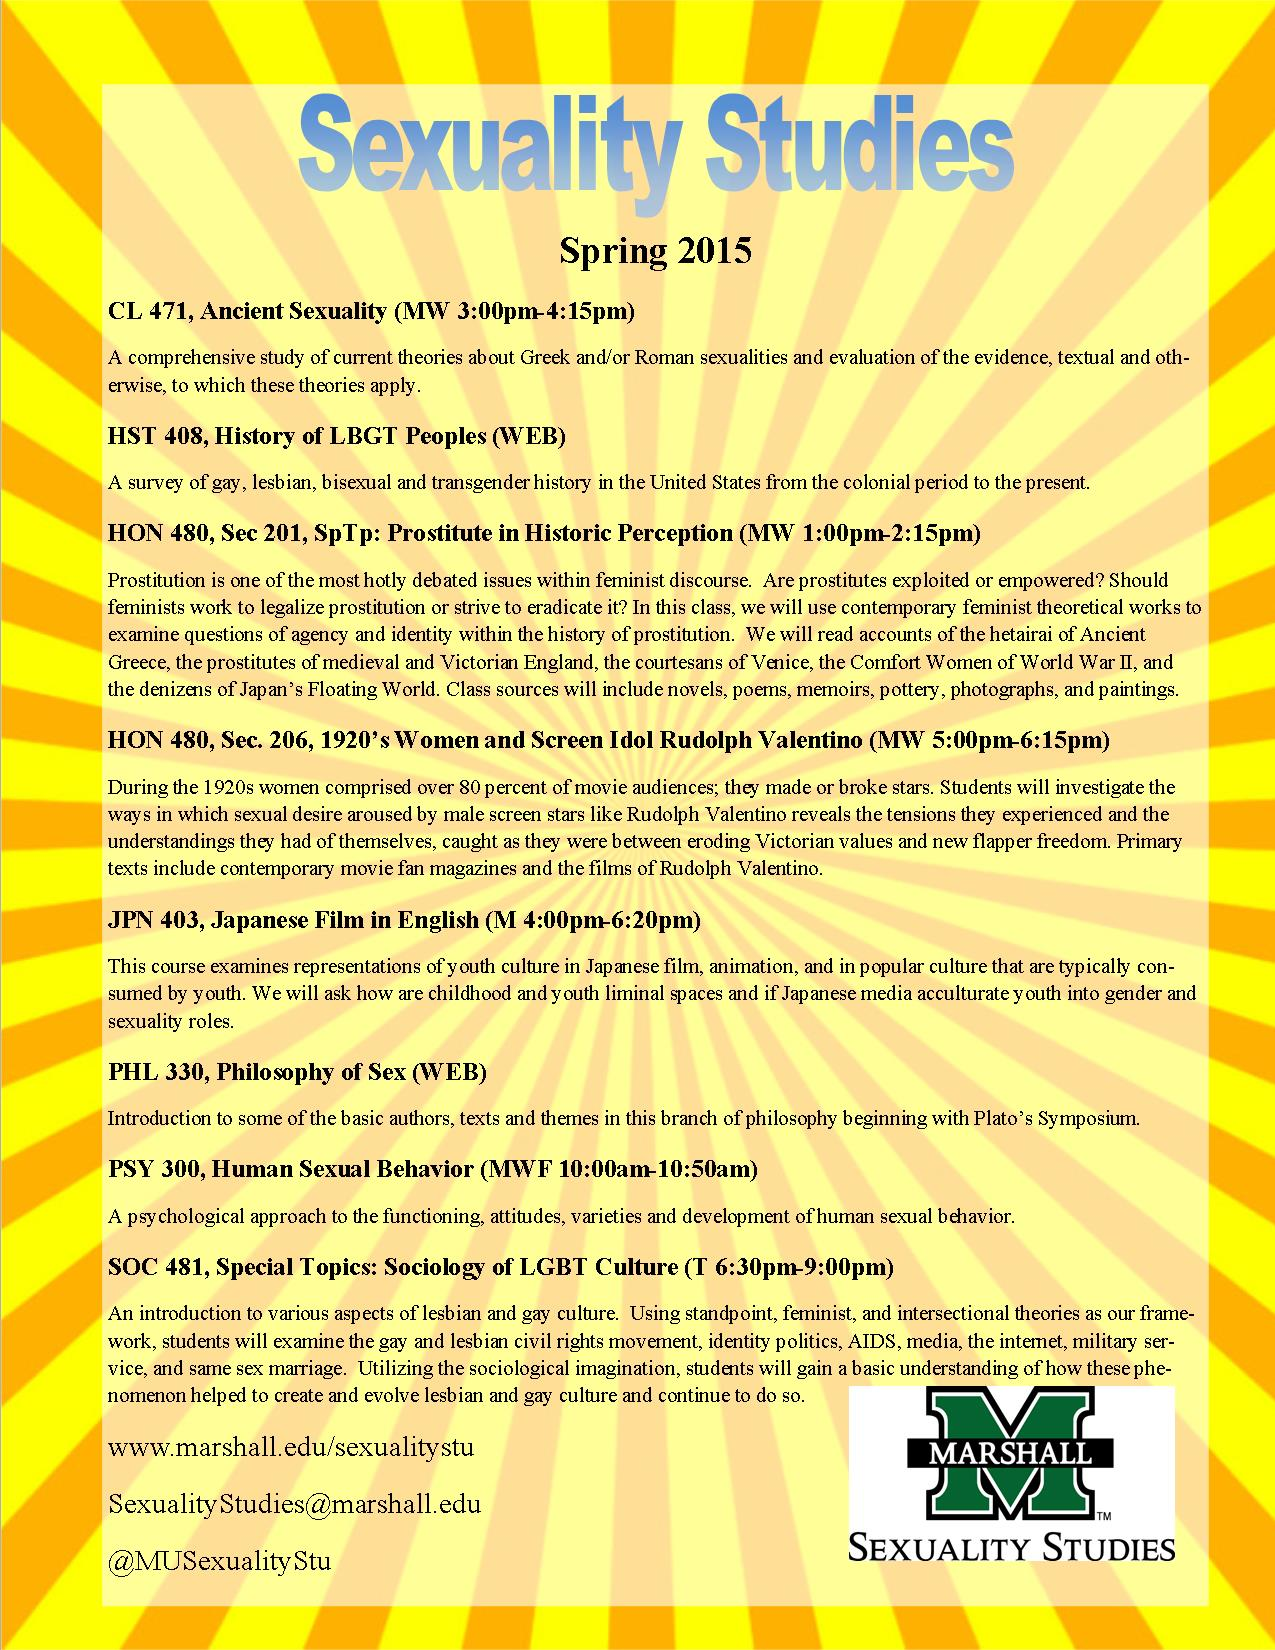 2015 Sexuality Studies spring course list v2